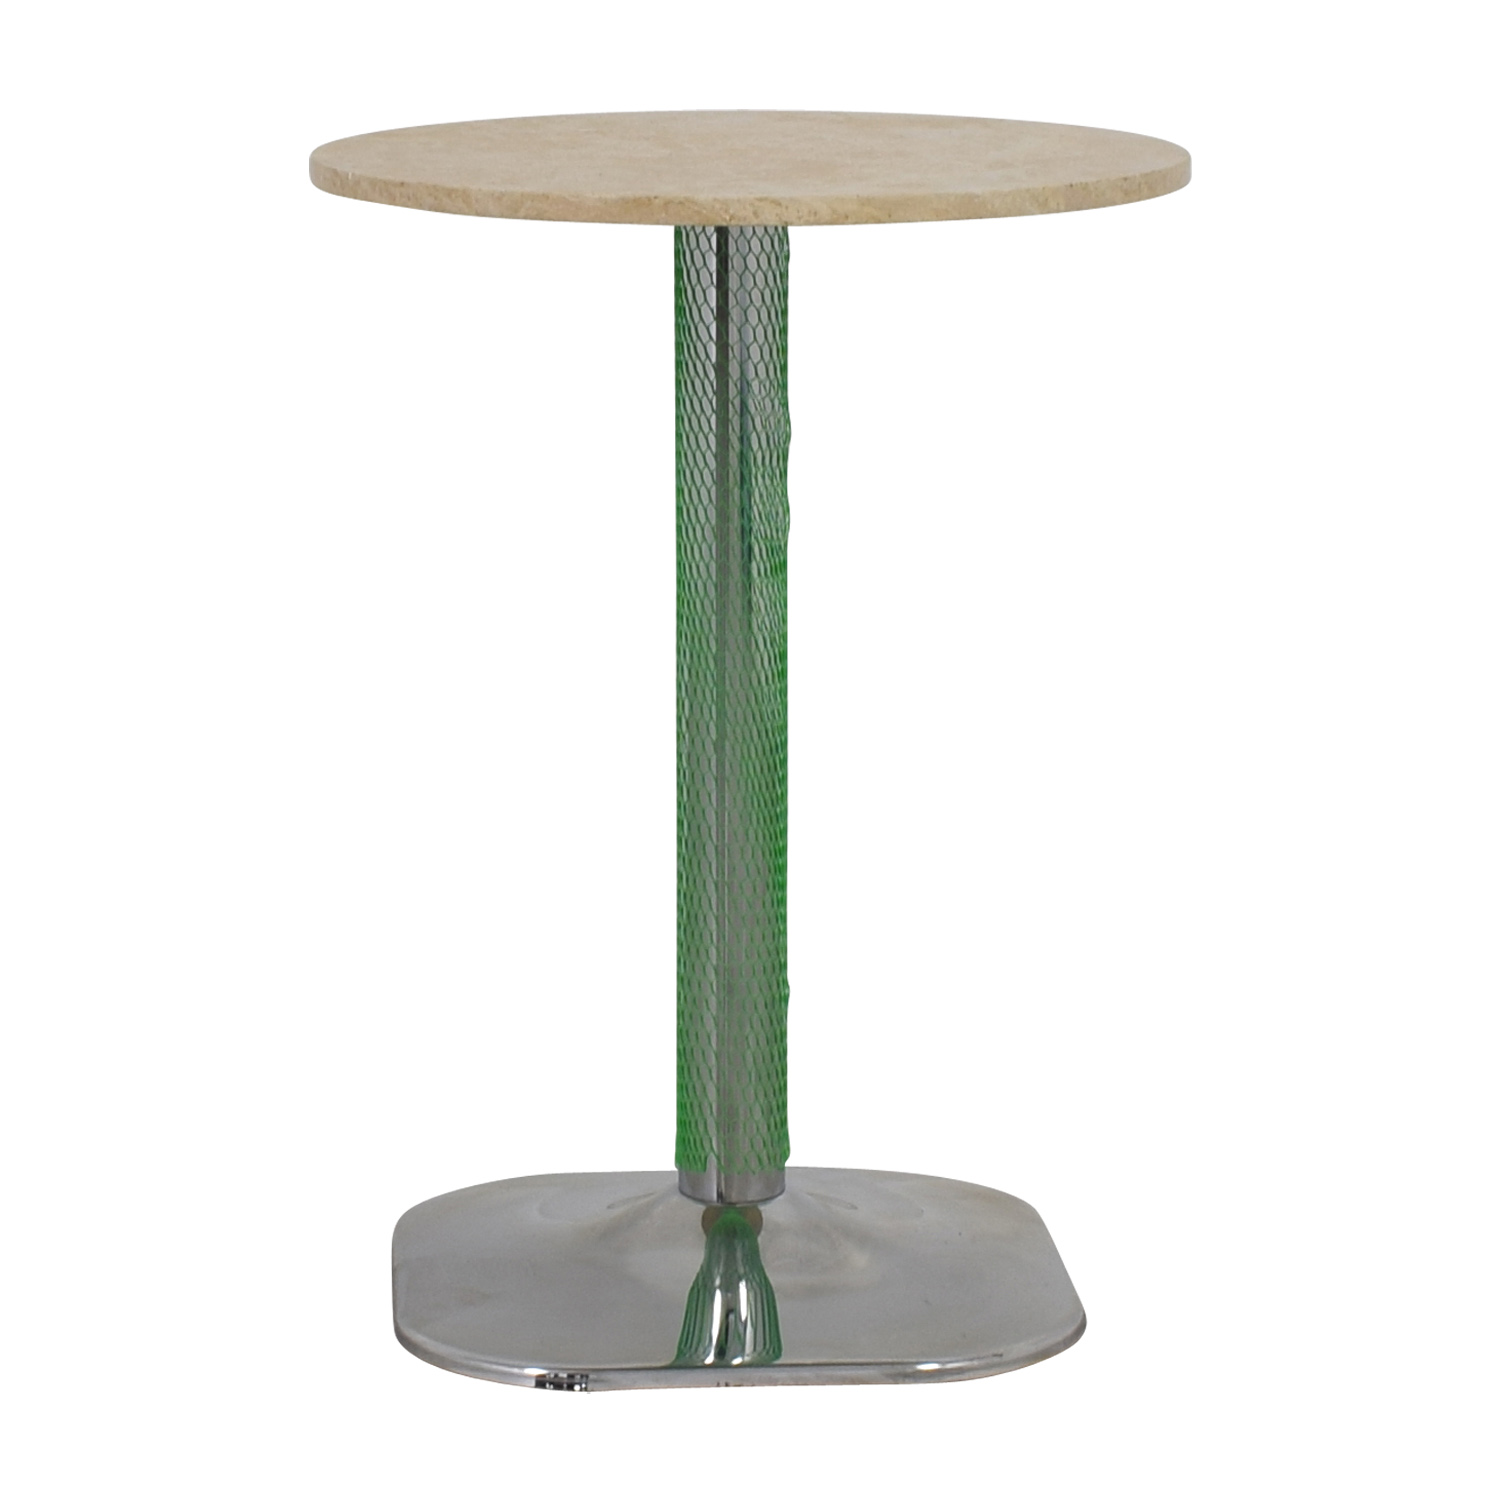 shop Lotus Lotus Cream Marble with Green Pedestal Table online